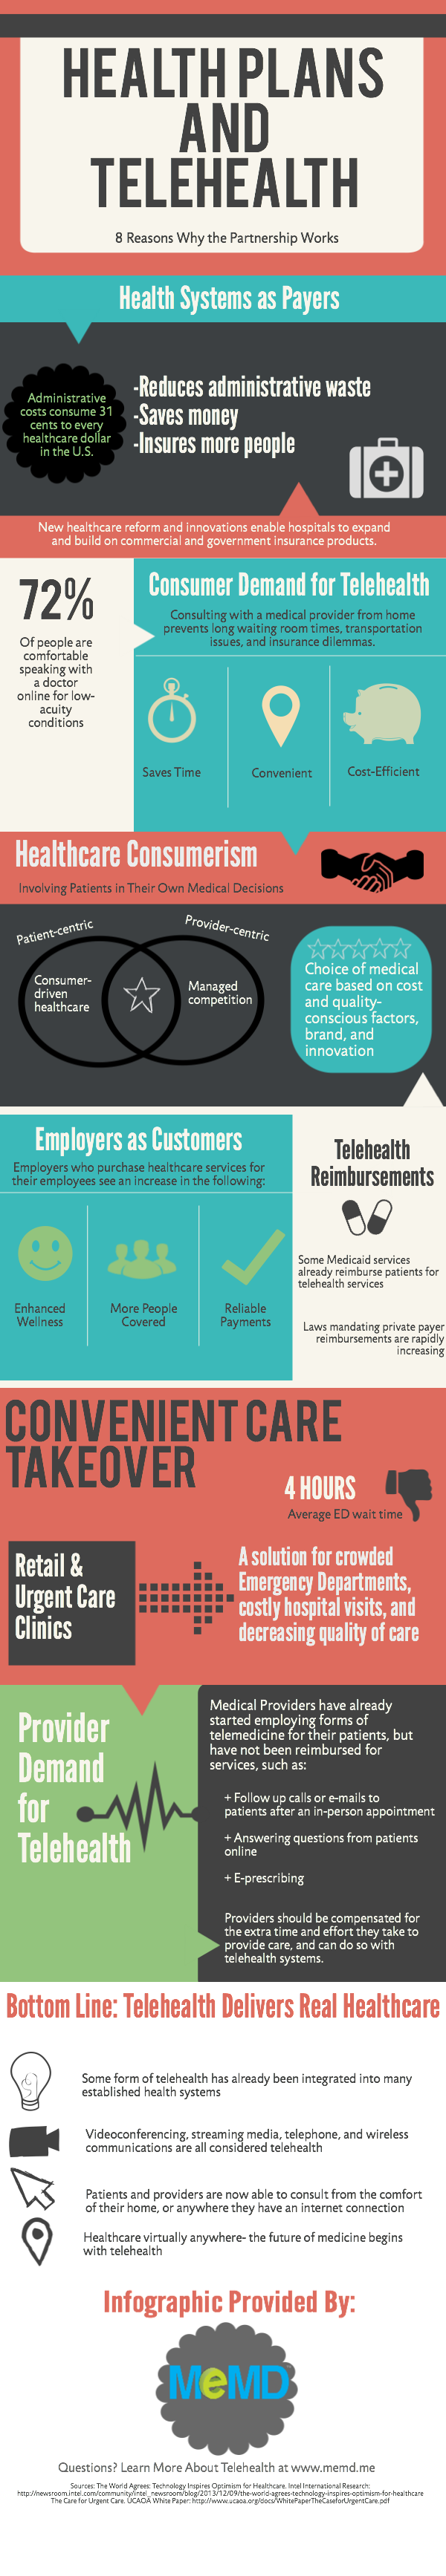 The Implementation of Telehealth Into Health Plans